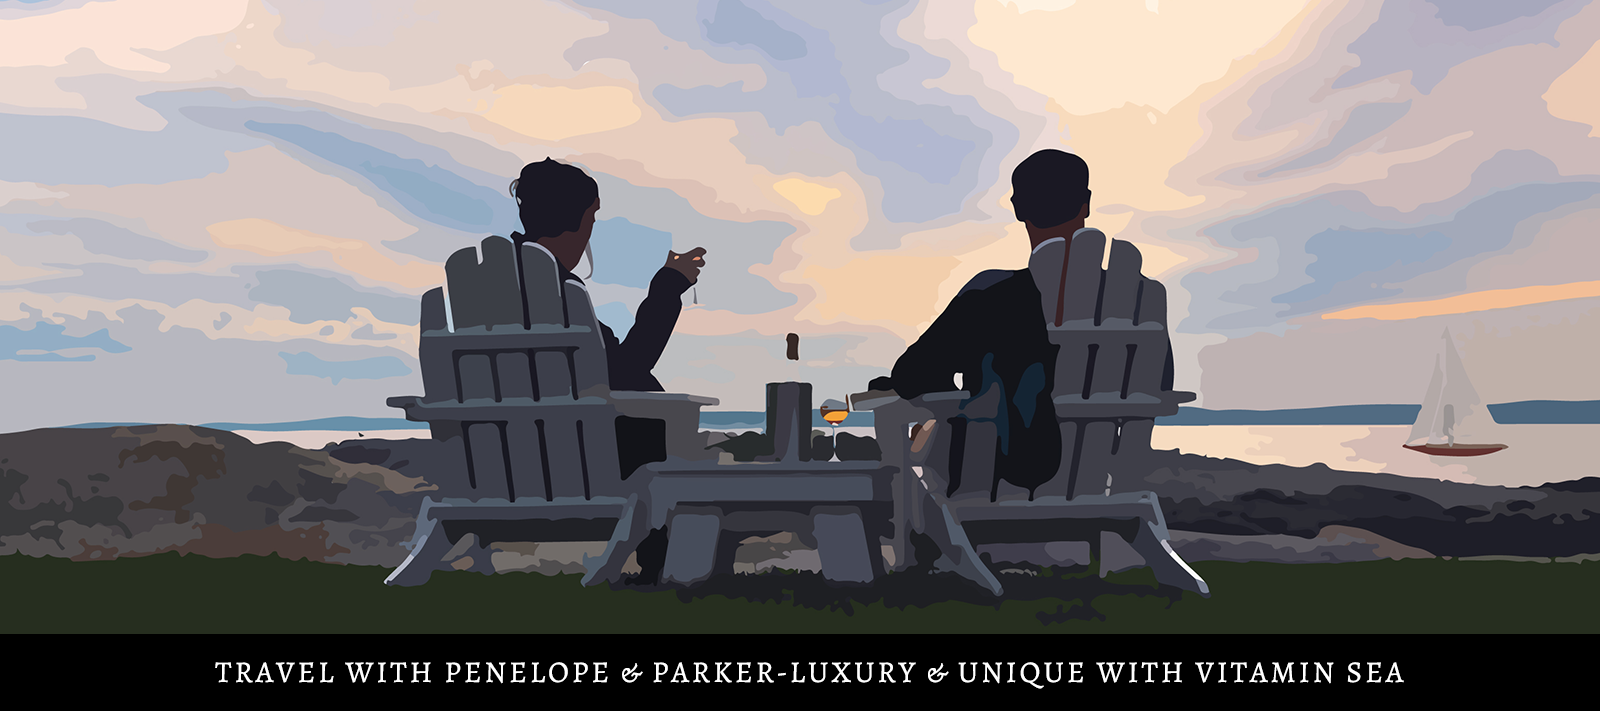 Travel with Penelope & Parker